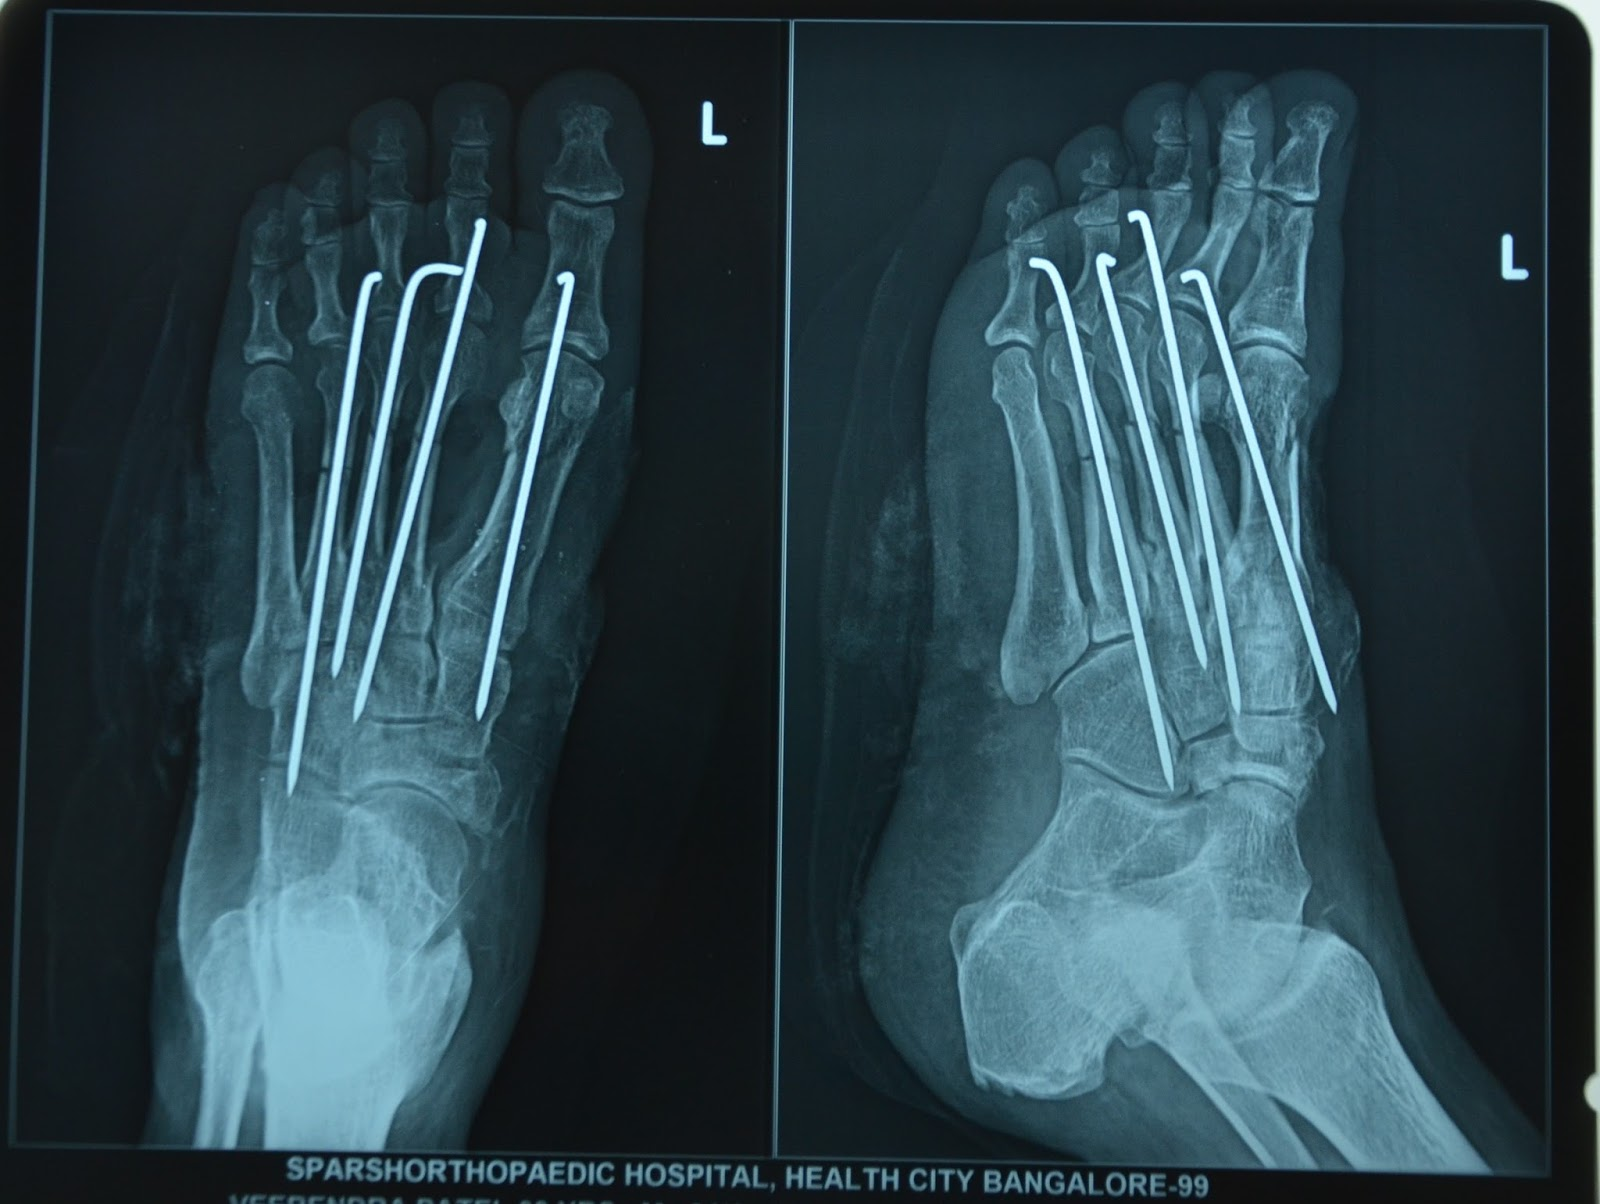 CRUSH INJURY FOOT - MULTIPLE METATARSAL FRACTURES - K-WIRE FIXATION ...